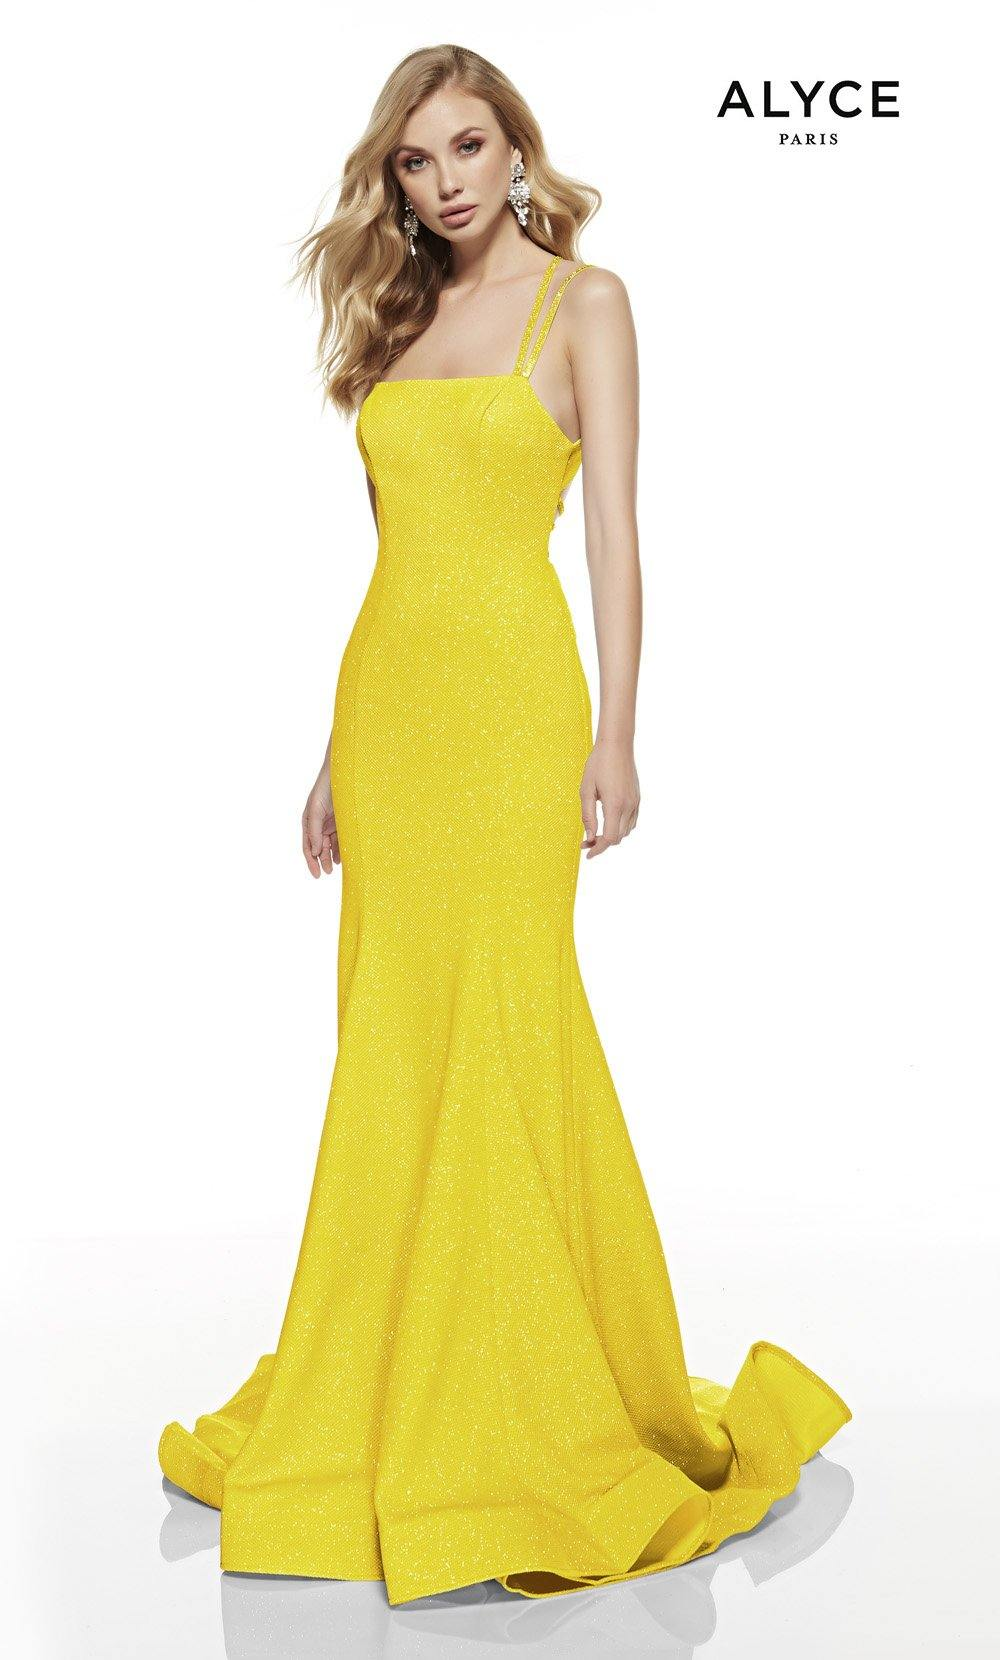 Bright Yellow mermaid style prom dress with a squared neckline and a sweep train